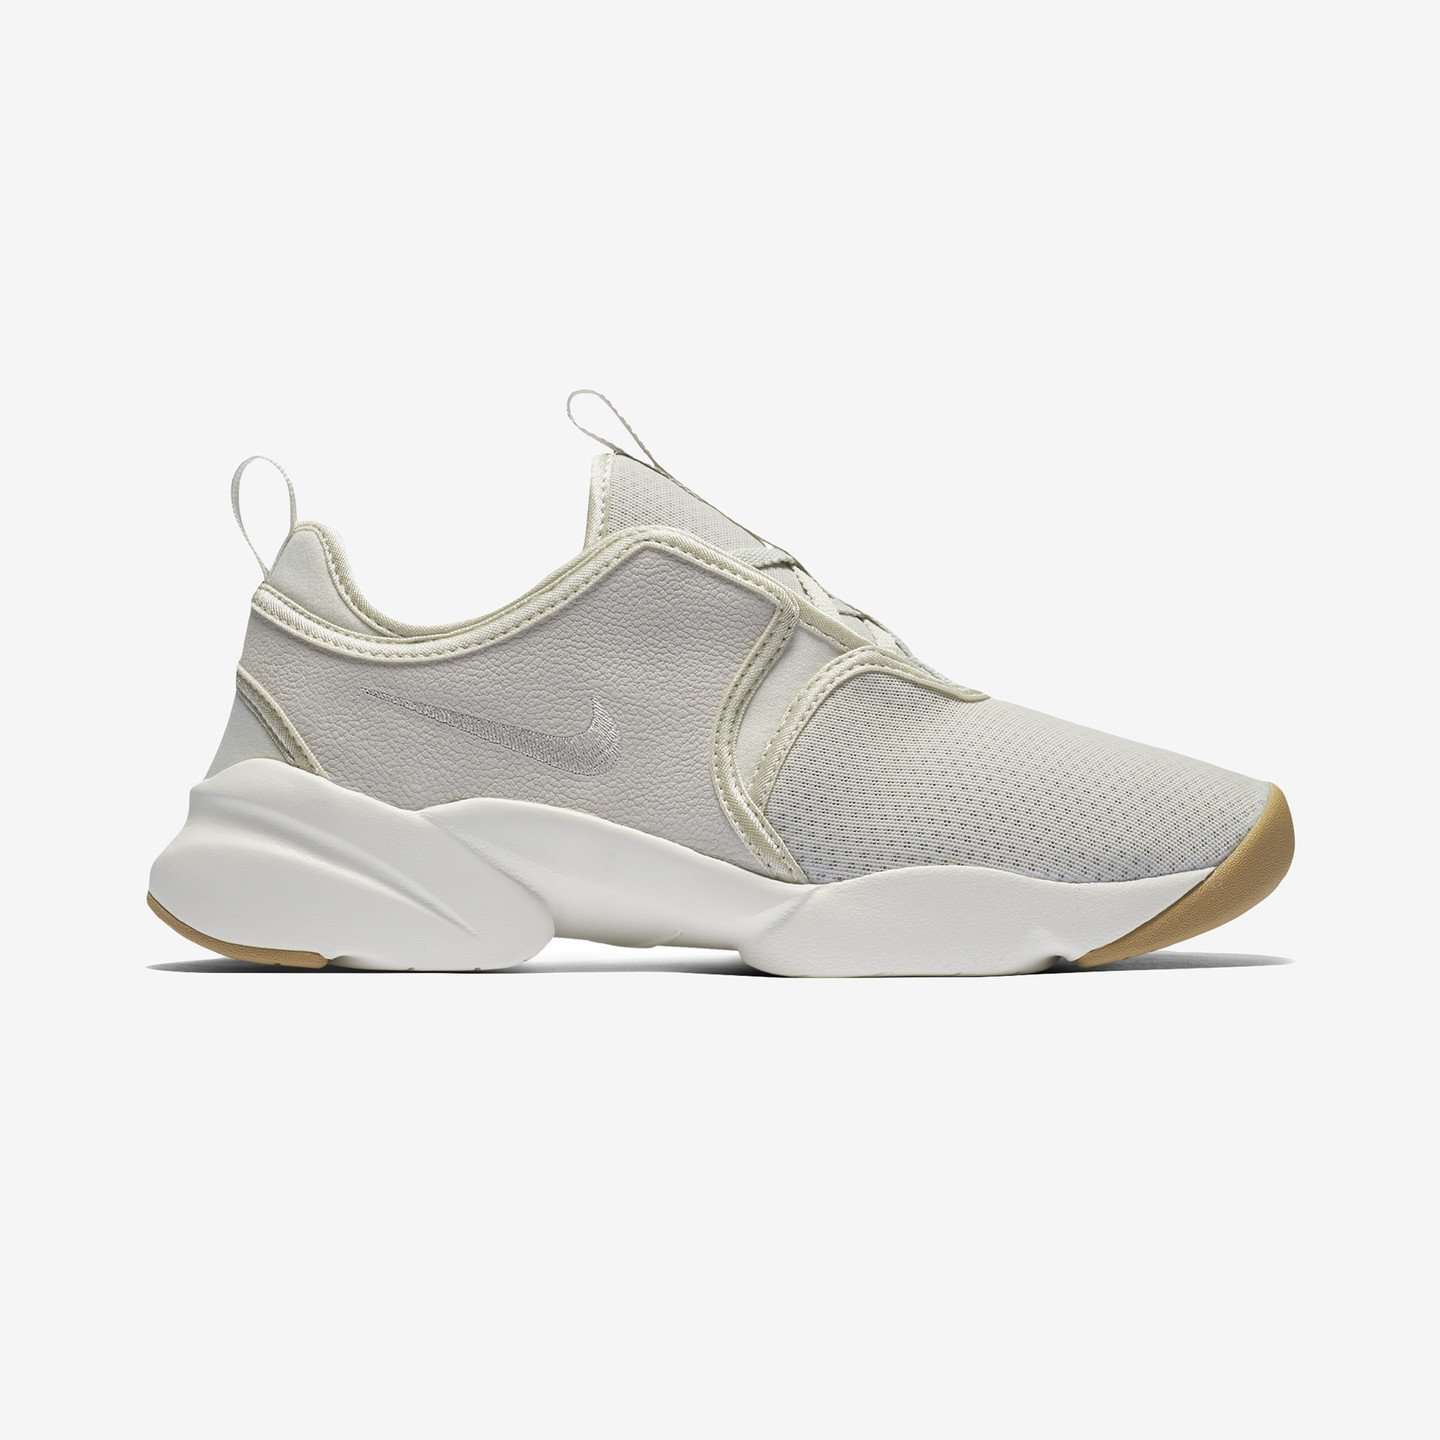 Nike Wmns Loden Pinnacle Light Bone / Sail 926586-002-36.5